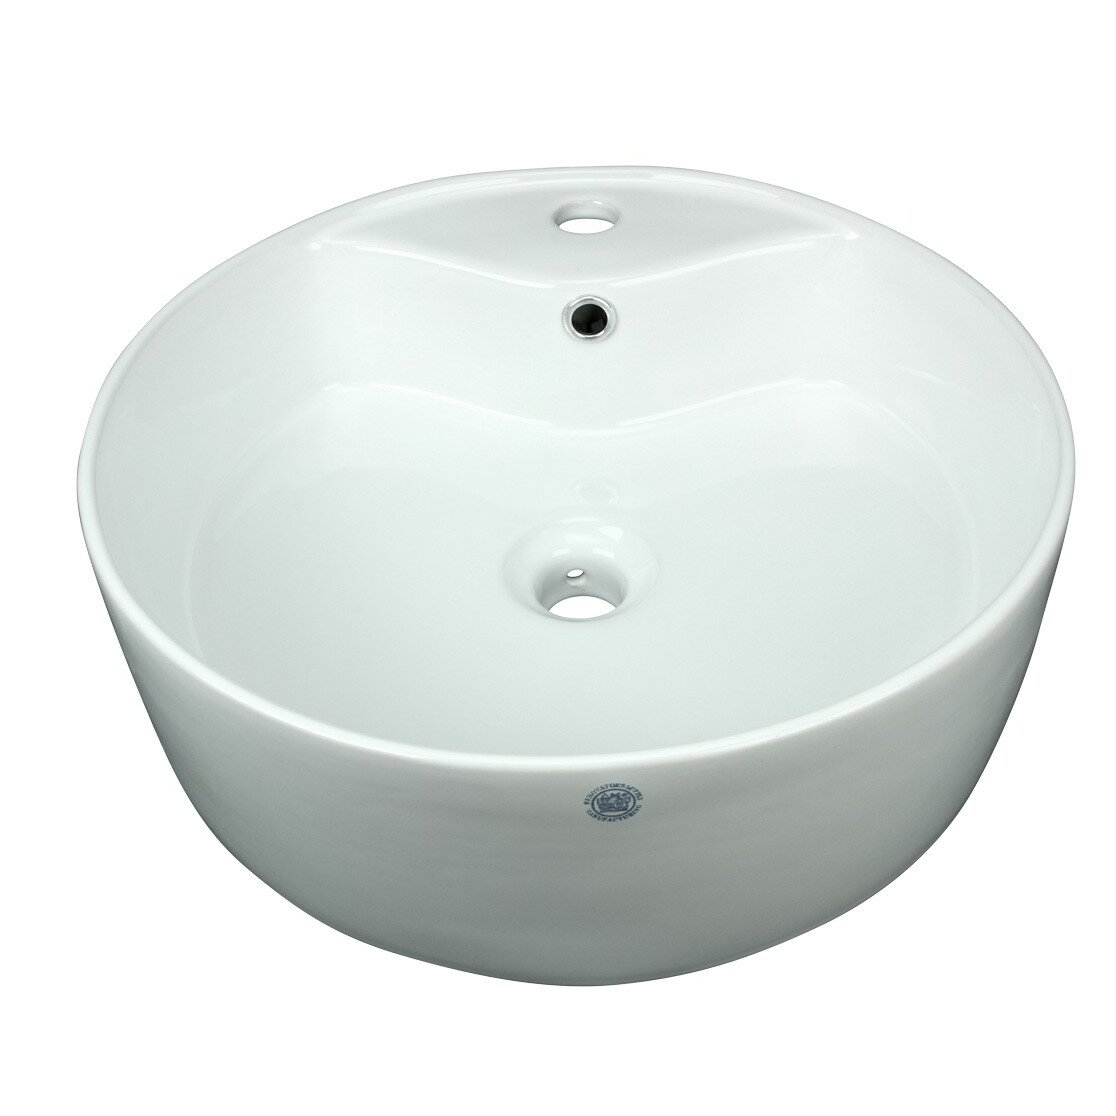 The Renovators Supply Inc Vitreous China Circular Vessel Bathroom Sink With Overflow Wayfair